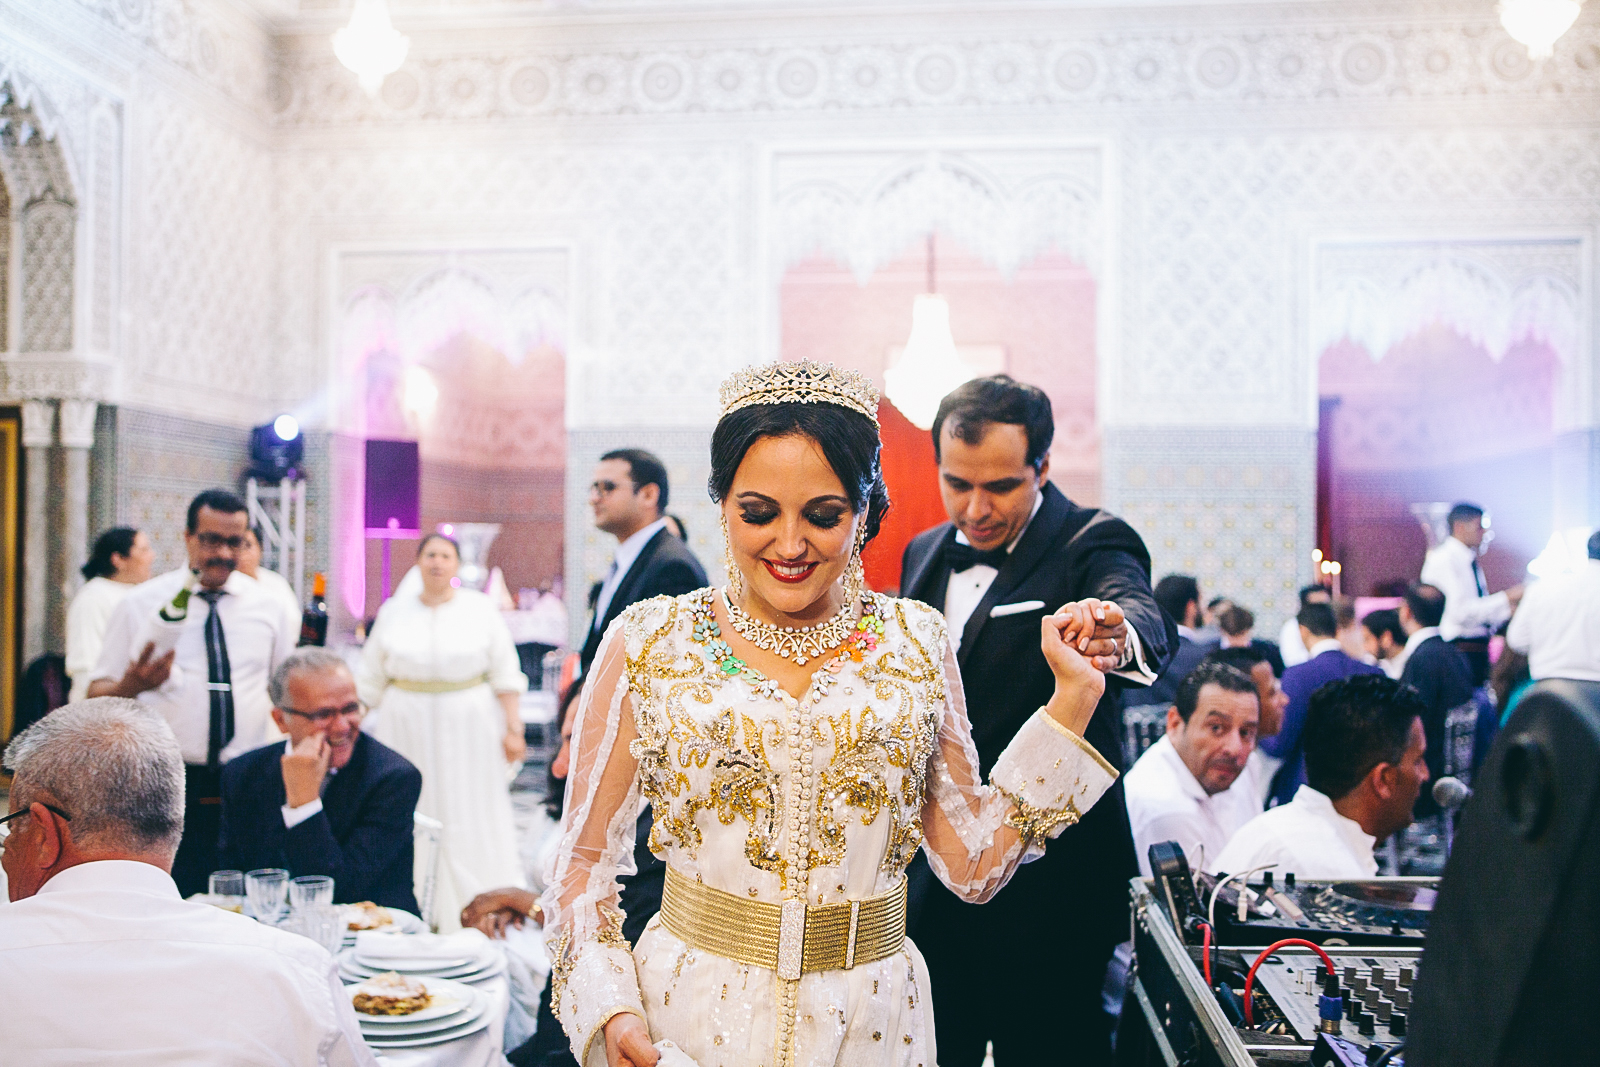 traditional_moroccan_wedding_photographry_casablanca_morocco_houda_vivek_ebony_siovhan_bokeh_photography_136.jpg